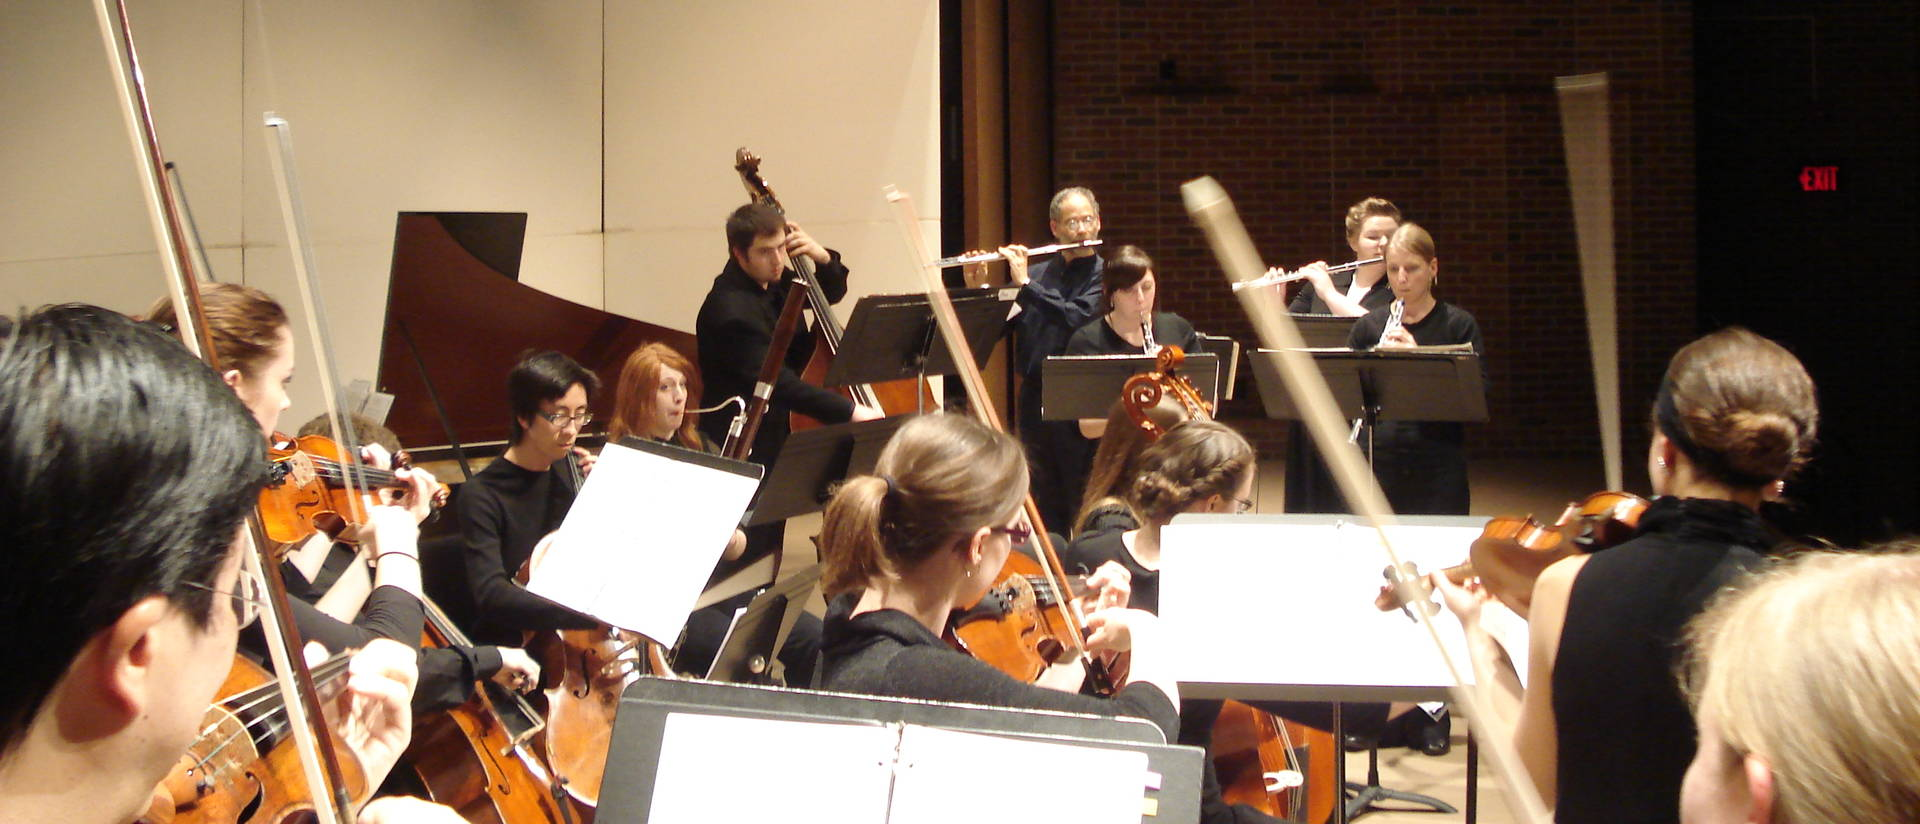 student chamber orchestra